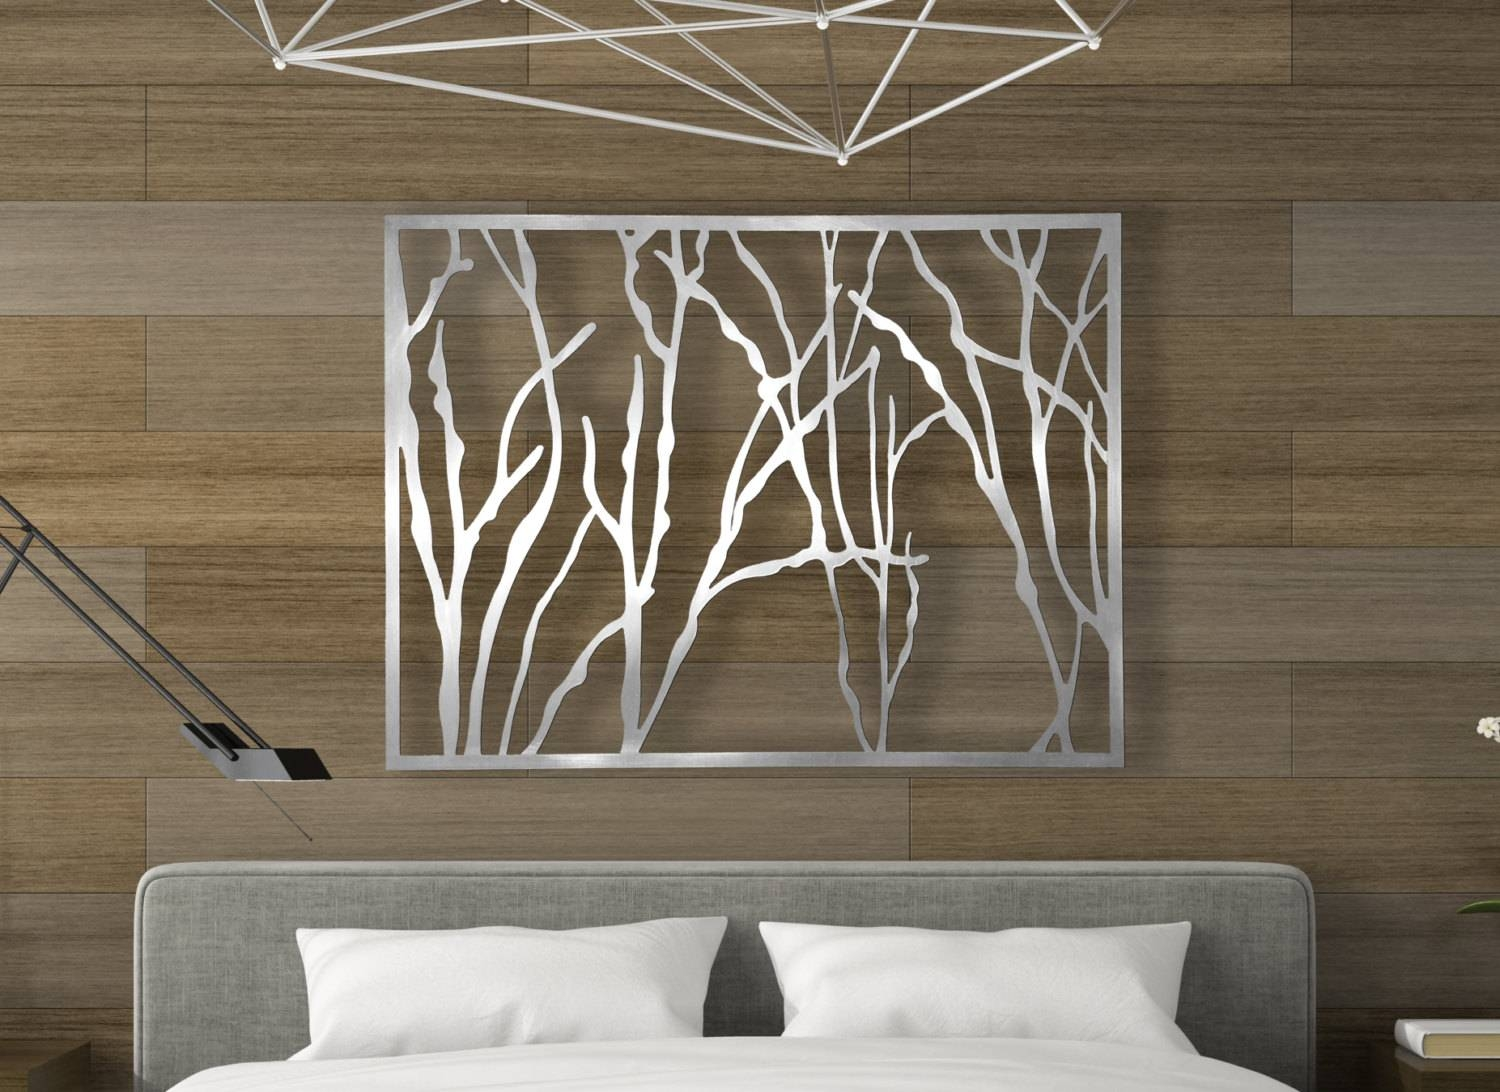 Laser Cut Metal Decorative Wall Art Panel Sculpture For Home Inside Newest Laser Cut Metal Wall Art (View 6 of 20)